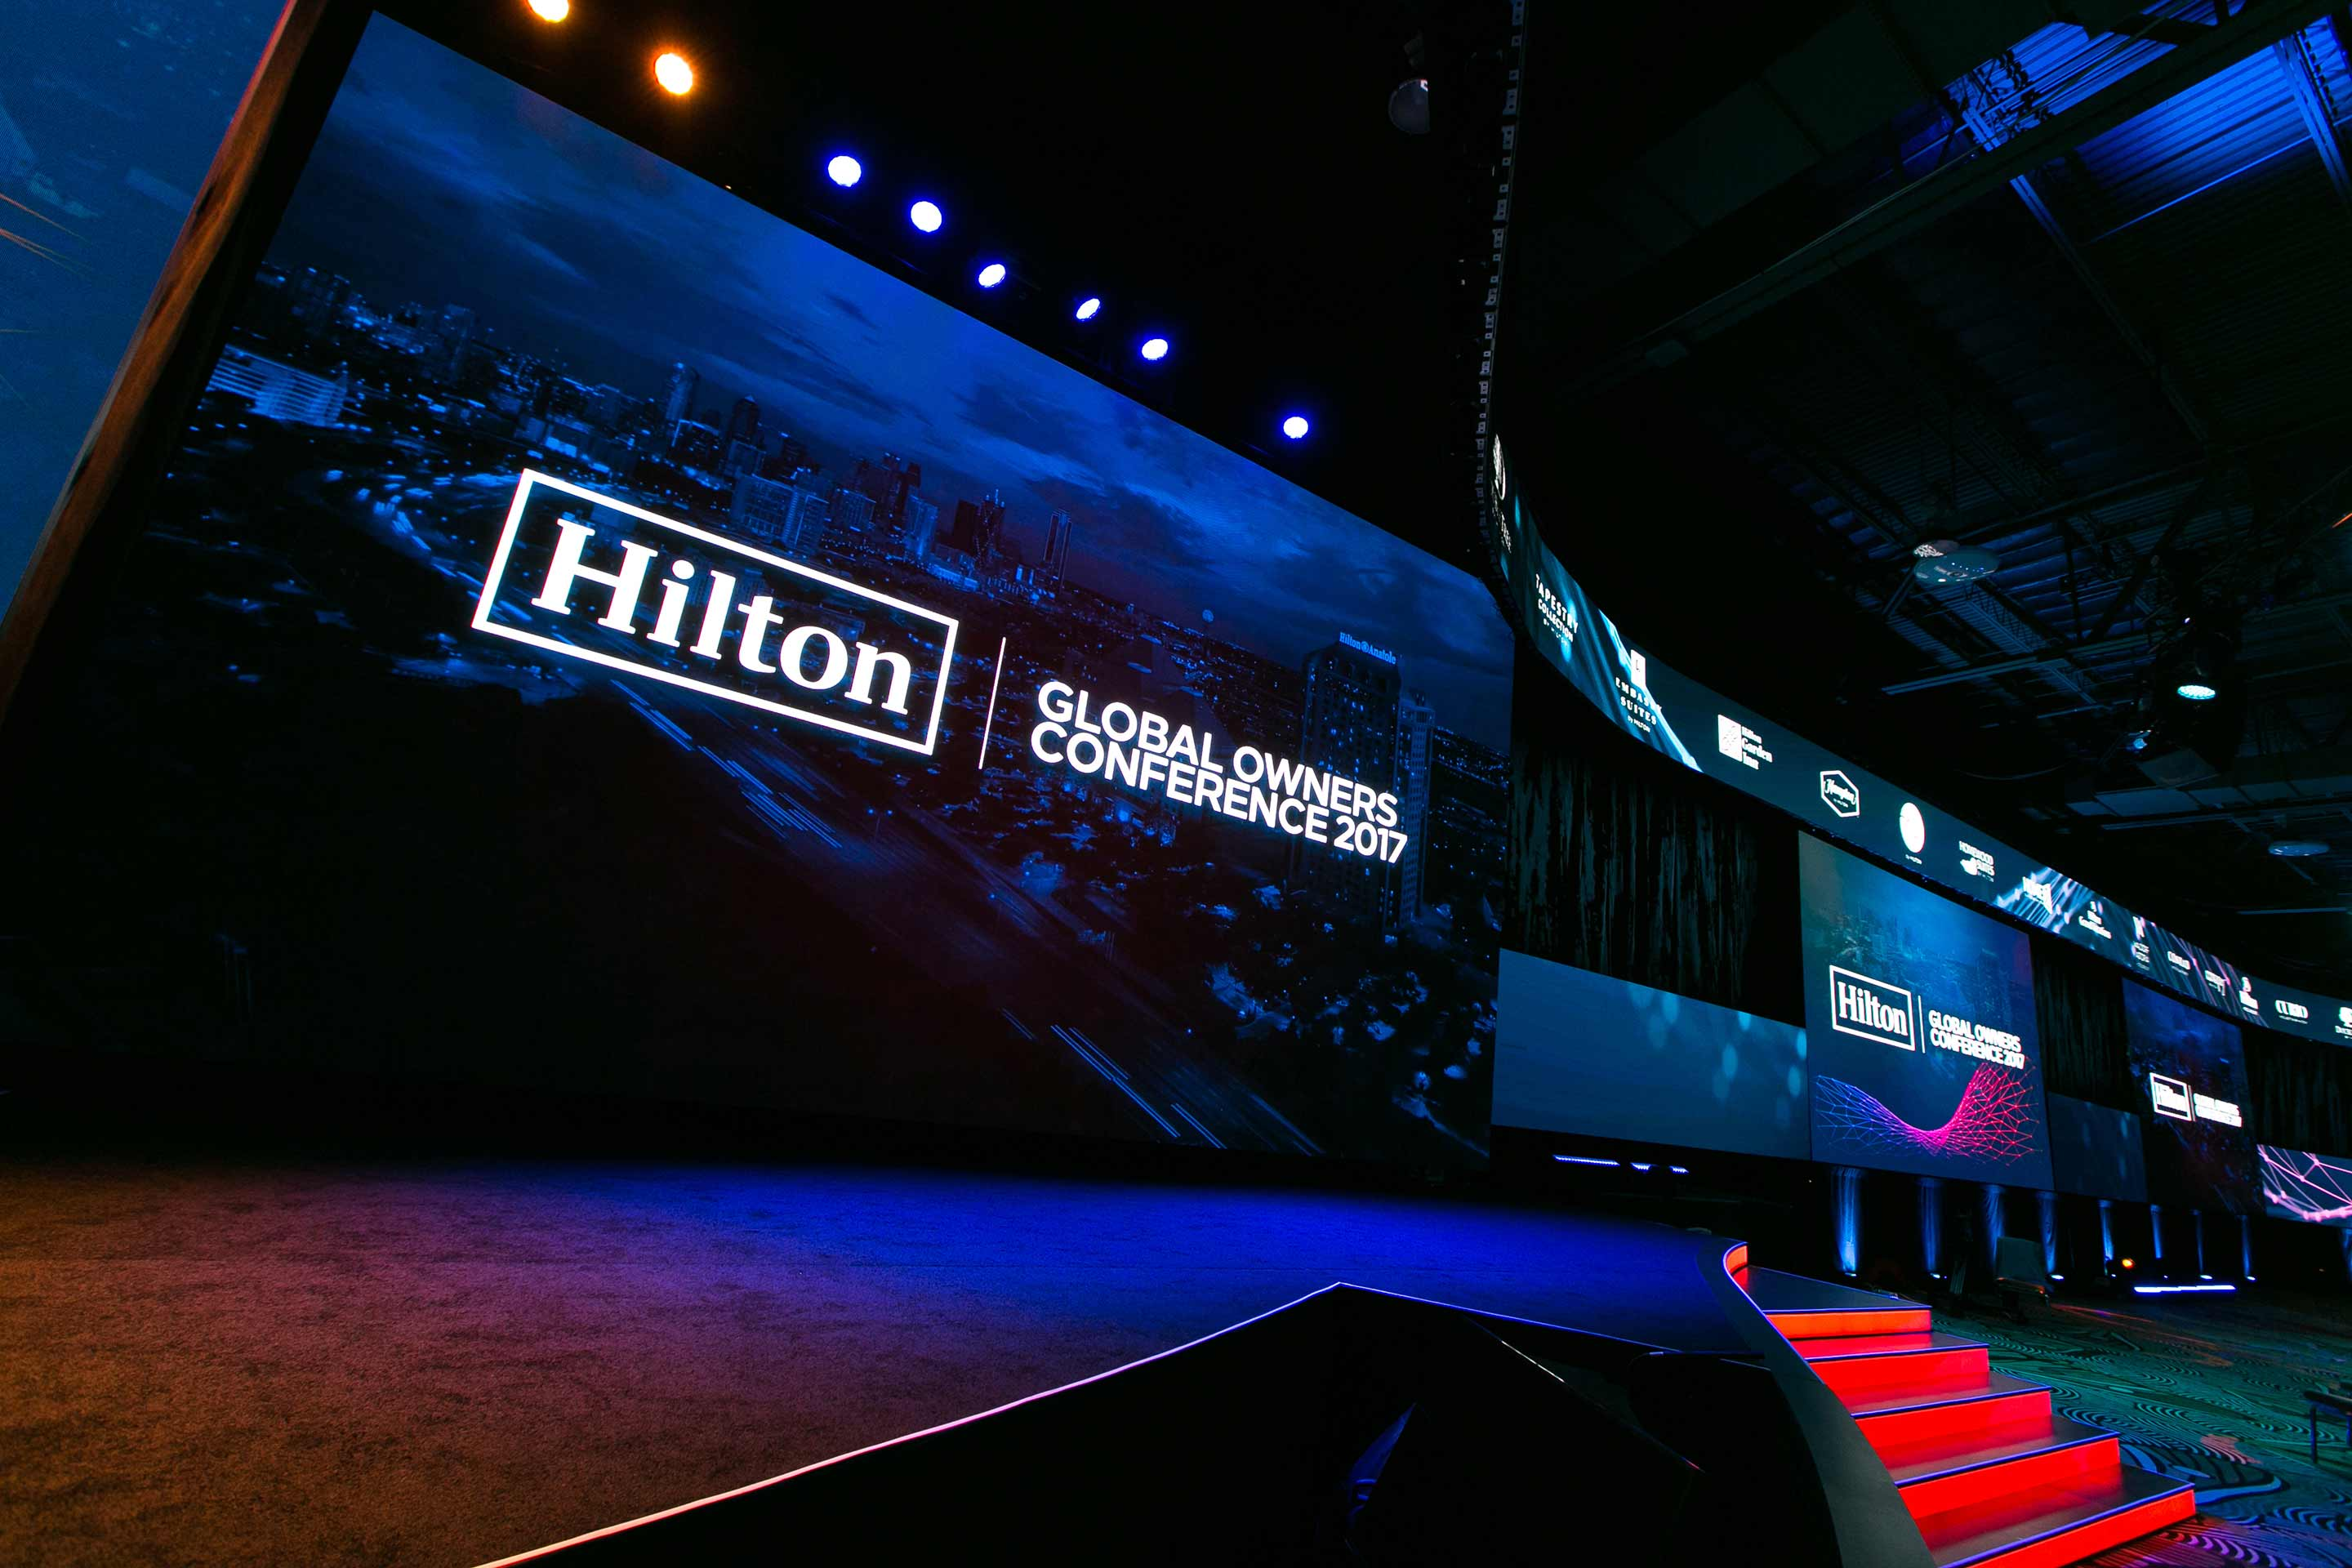 Hilton Global Owners Conference 2017